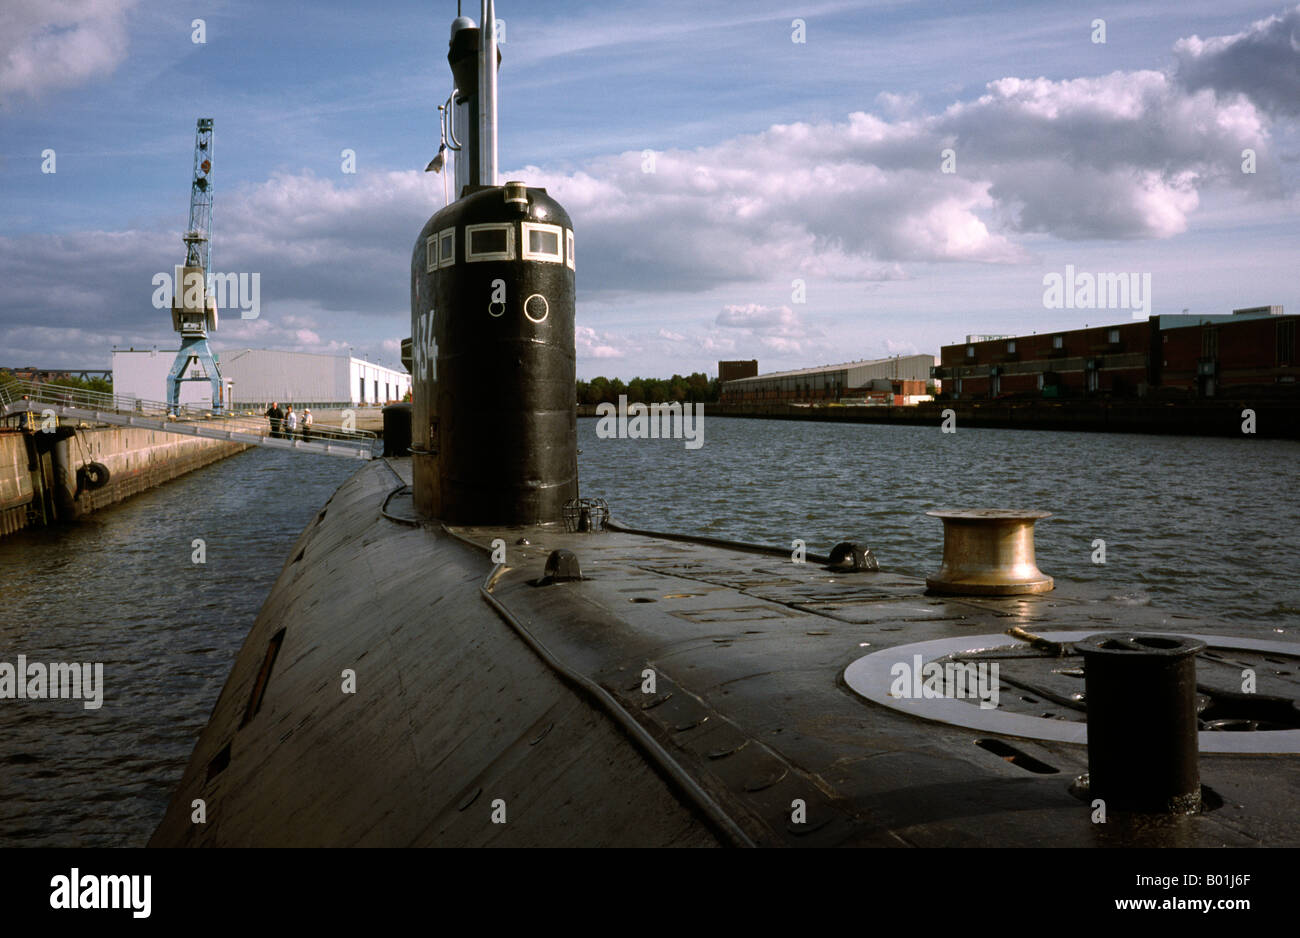 Sept 27, 2003 - Non-nuclear Russian submarine U-434 (Tango class) on public display at the German port of Hamburg. - Stock Image